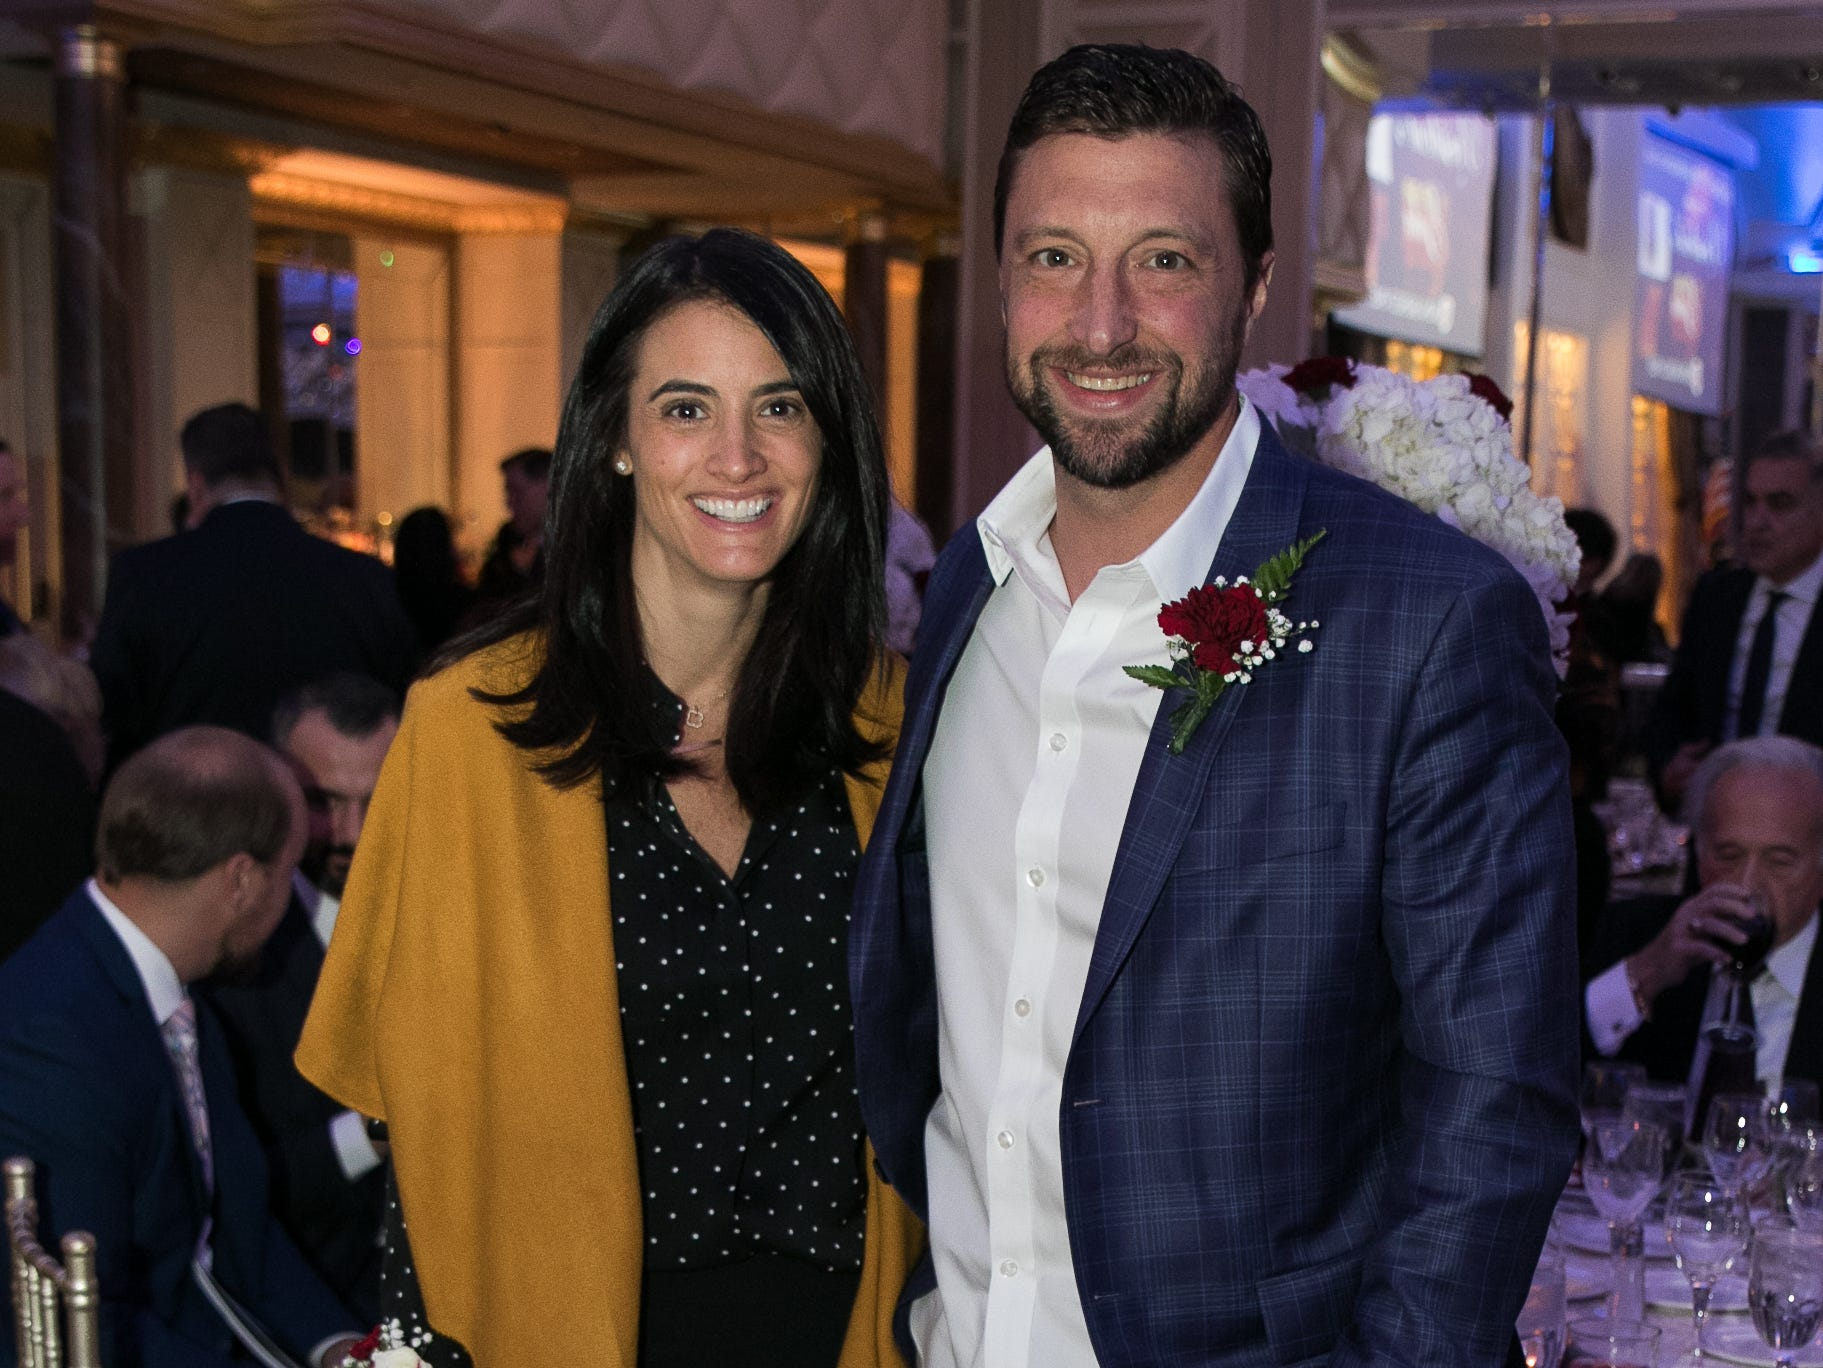 Honoree Don Van Natta and his wife. Don Bosco Prep held it's 17th Annual President's Gala at The Venitian in Garfield, NJ. 10/25/2018